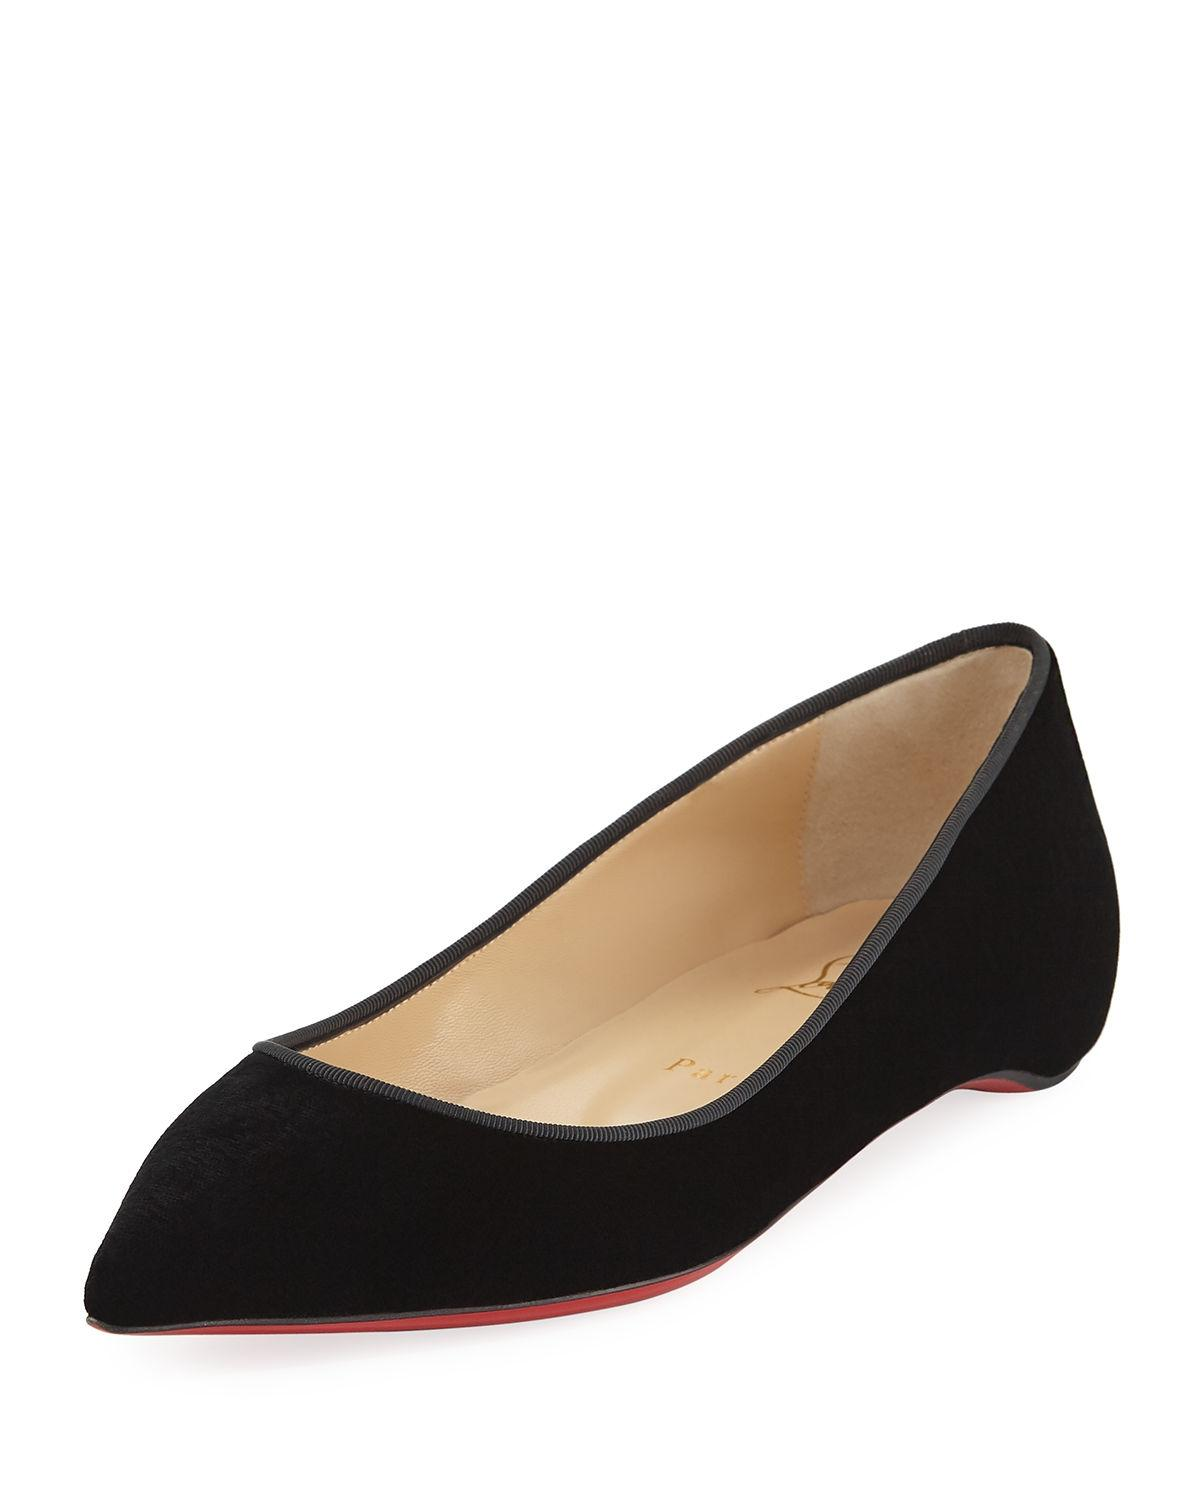 2880a683a42c christian louboutin oxfords pigalle follies black suede